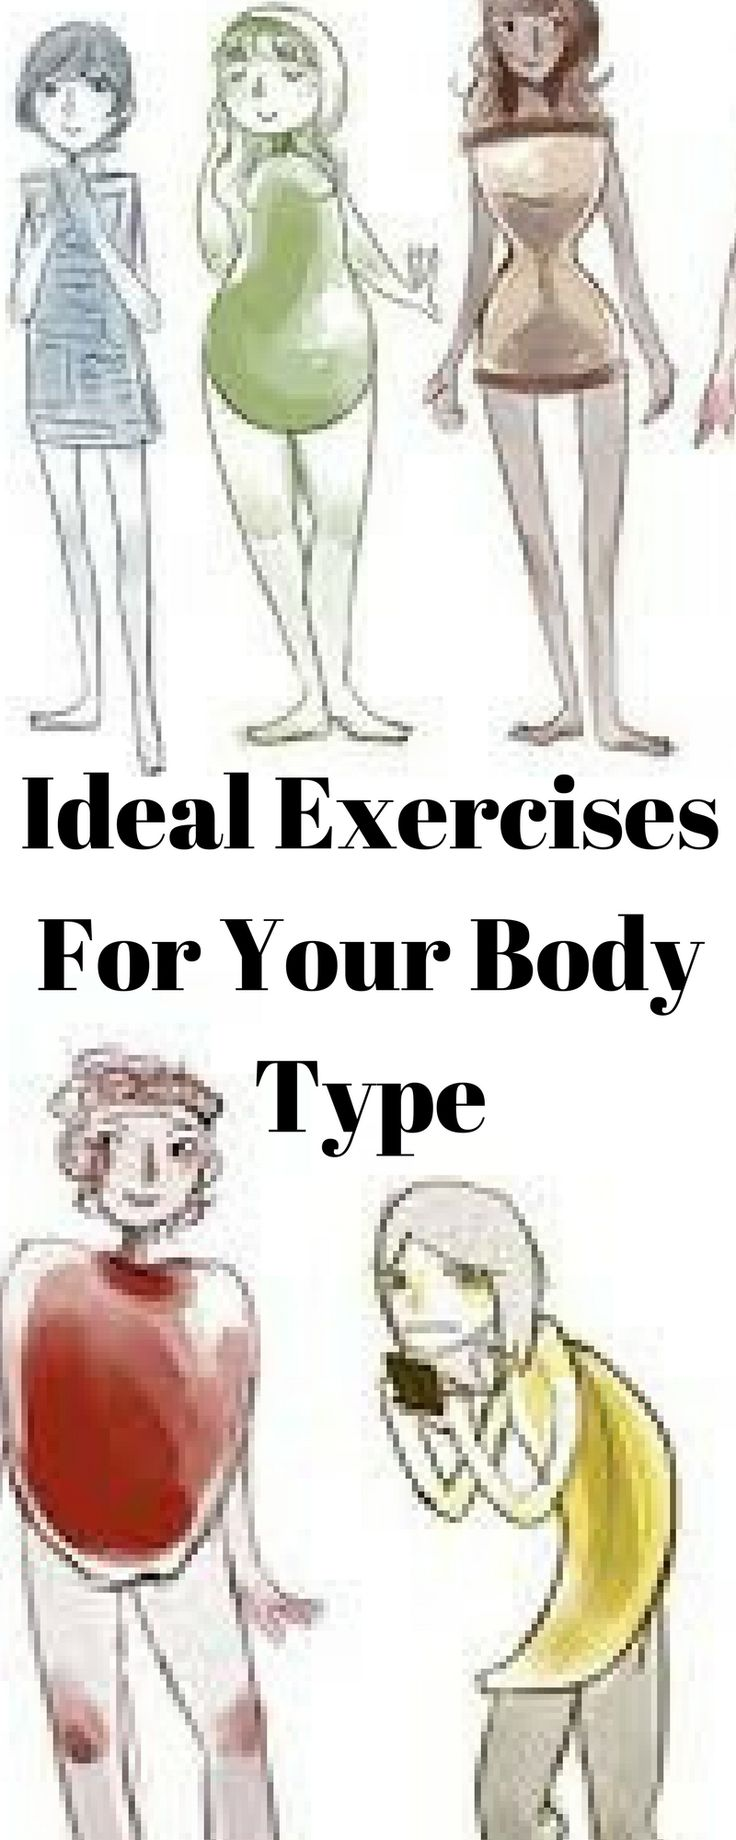 exercises-body-type/